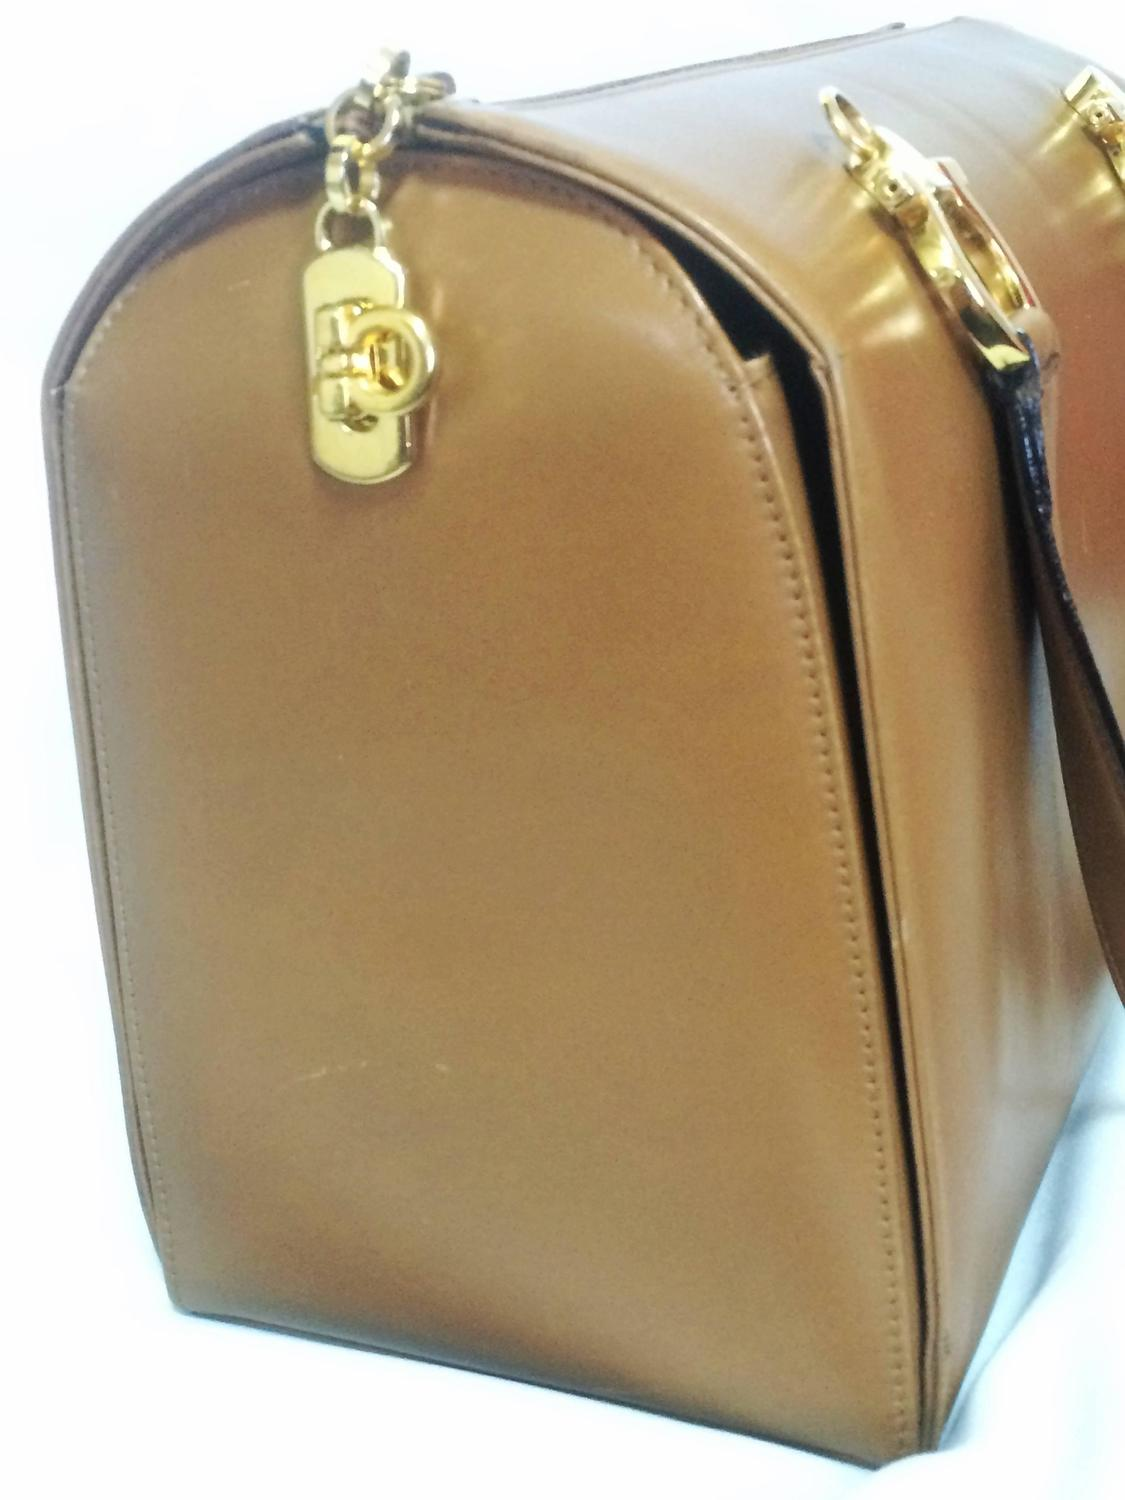 Vintage Salvatore Ferragamo tanned brown leather gancini handbag with ...